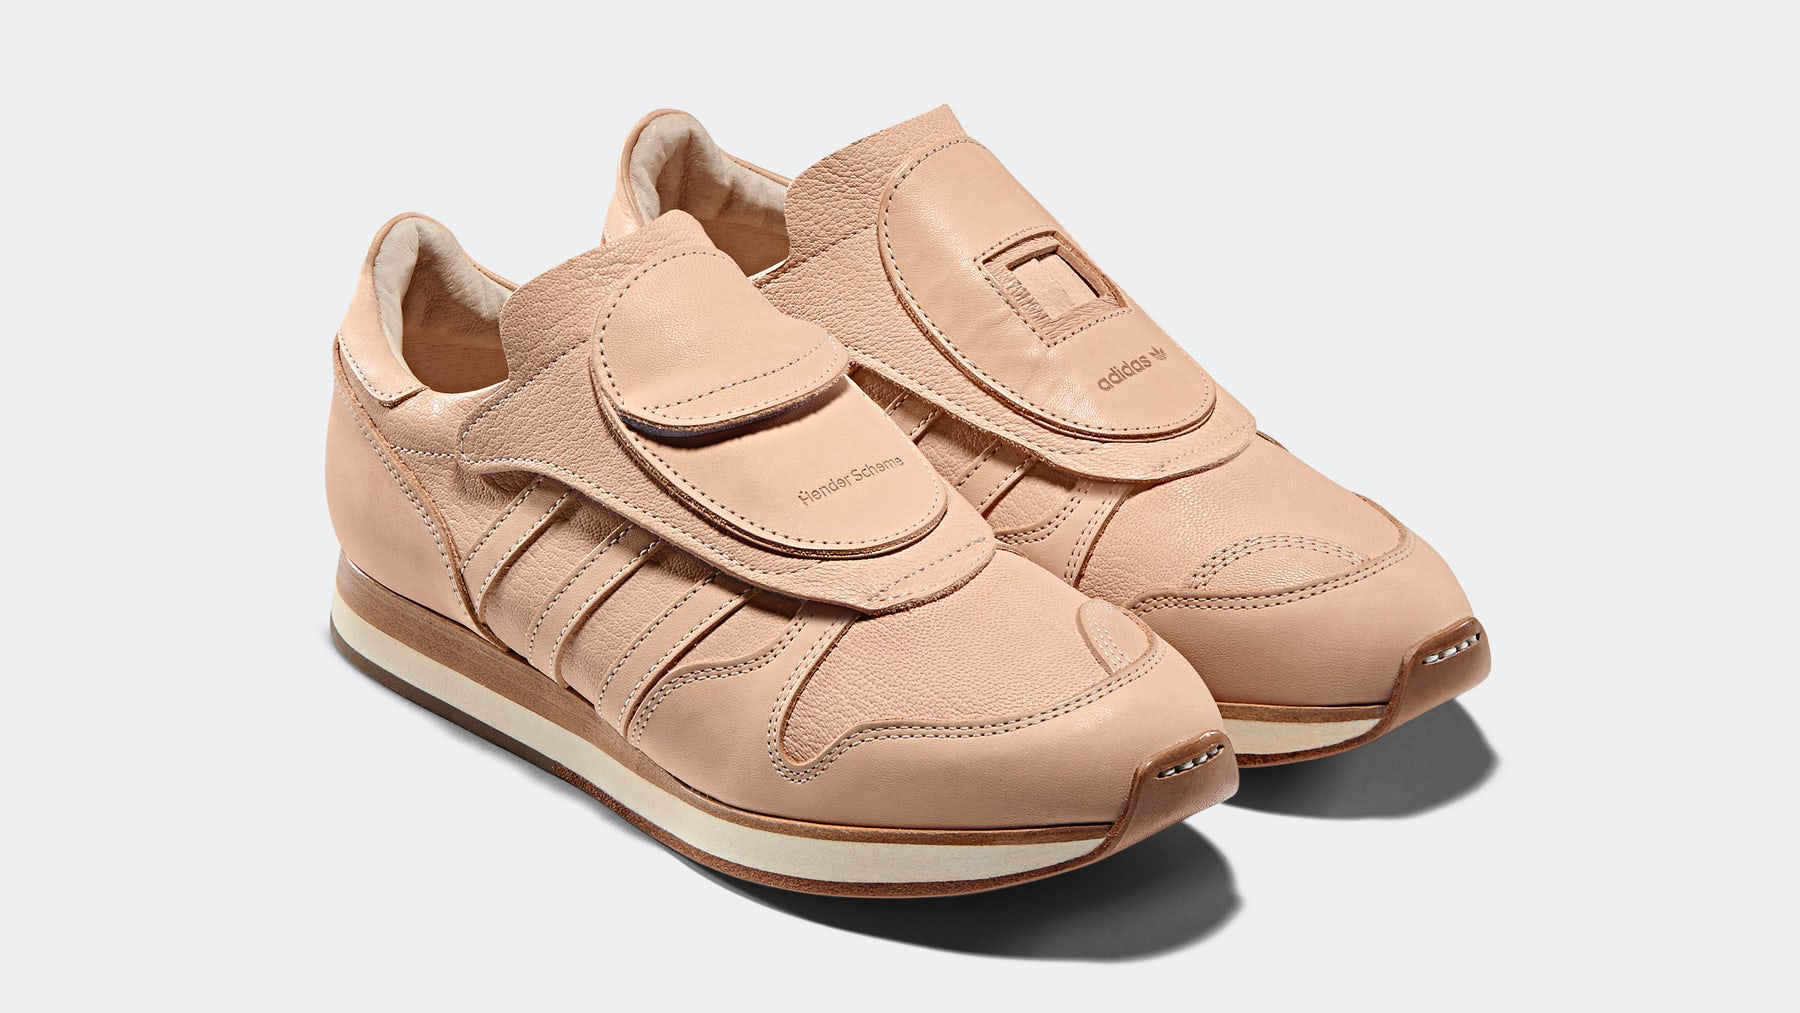 A Hender Scheme x Adidas Originals MicroPacer, one of three styles from the collaboration | Source: Courtesy